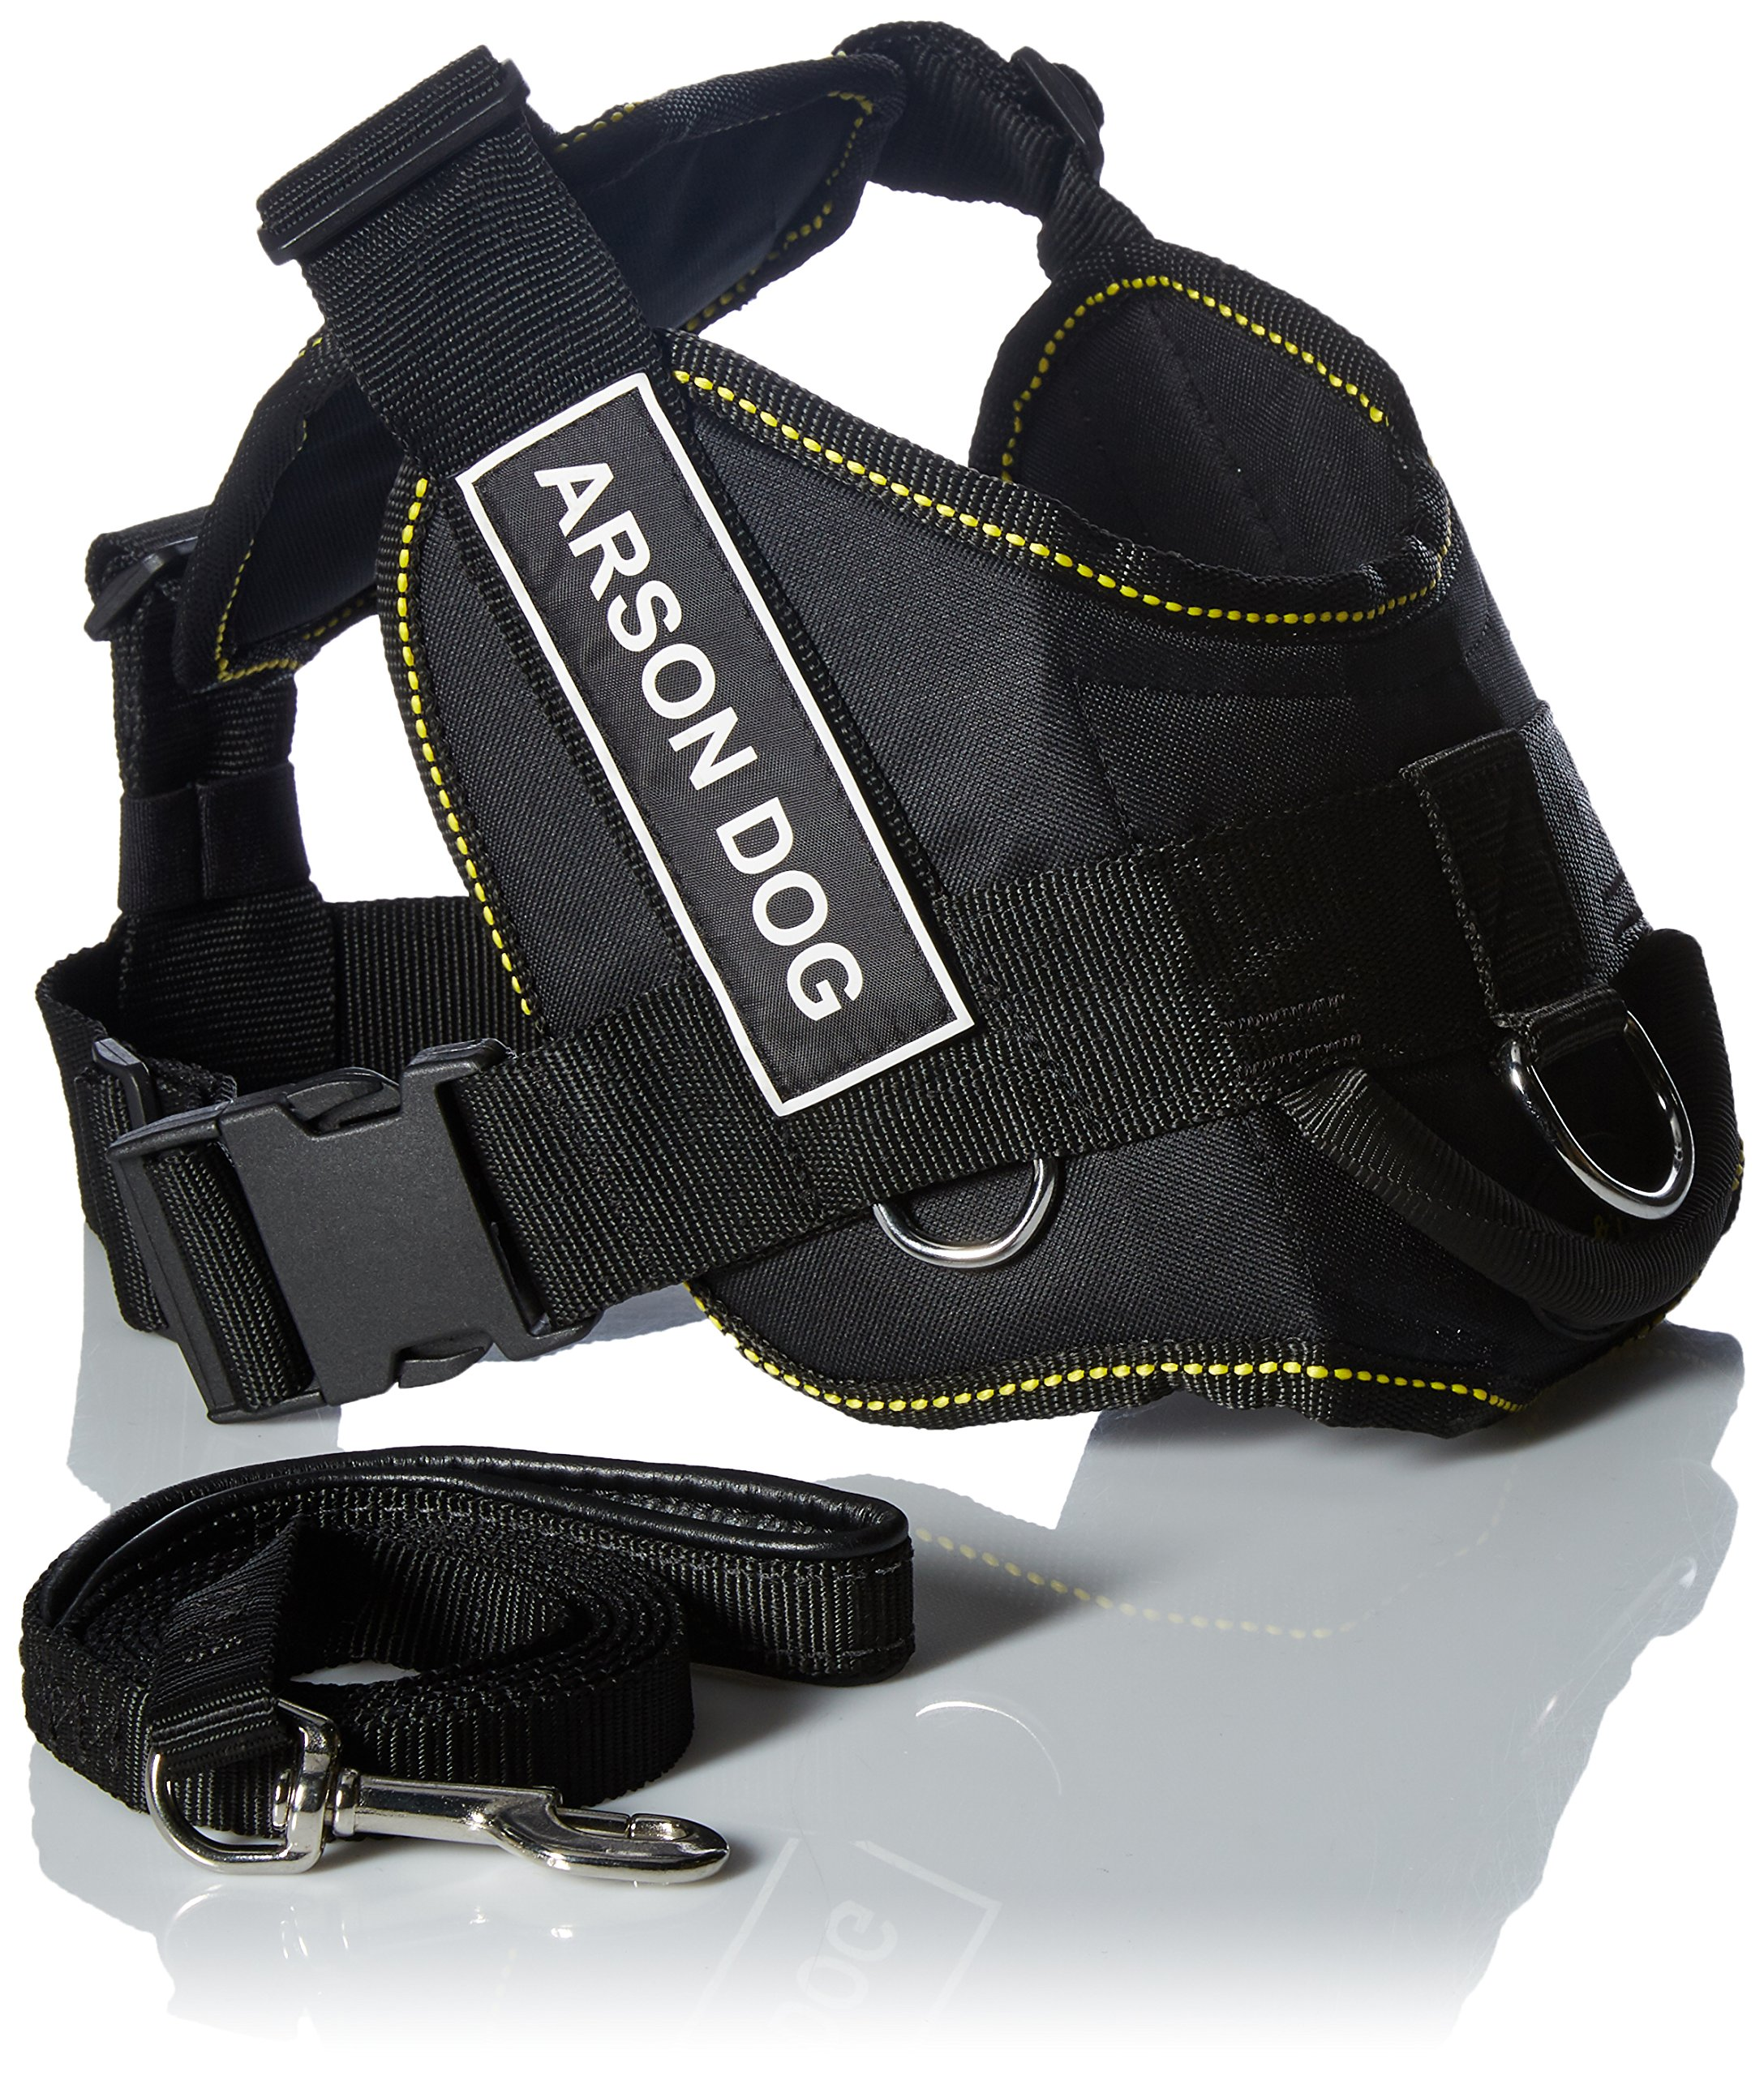 Dean & Tyler's DT Fun Chest Support ''ARSON DOG'' Harness, Medium, with 6 ft Padded Puppy Leash. by Dean & Tyler (Image #1)